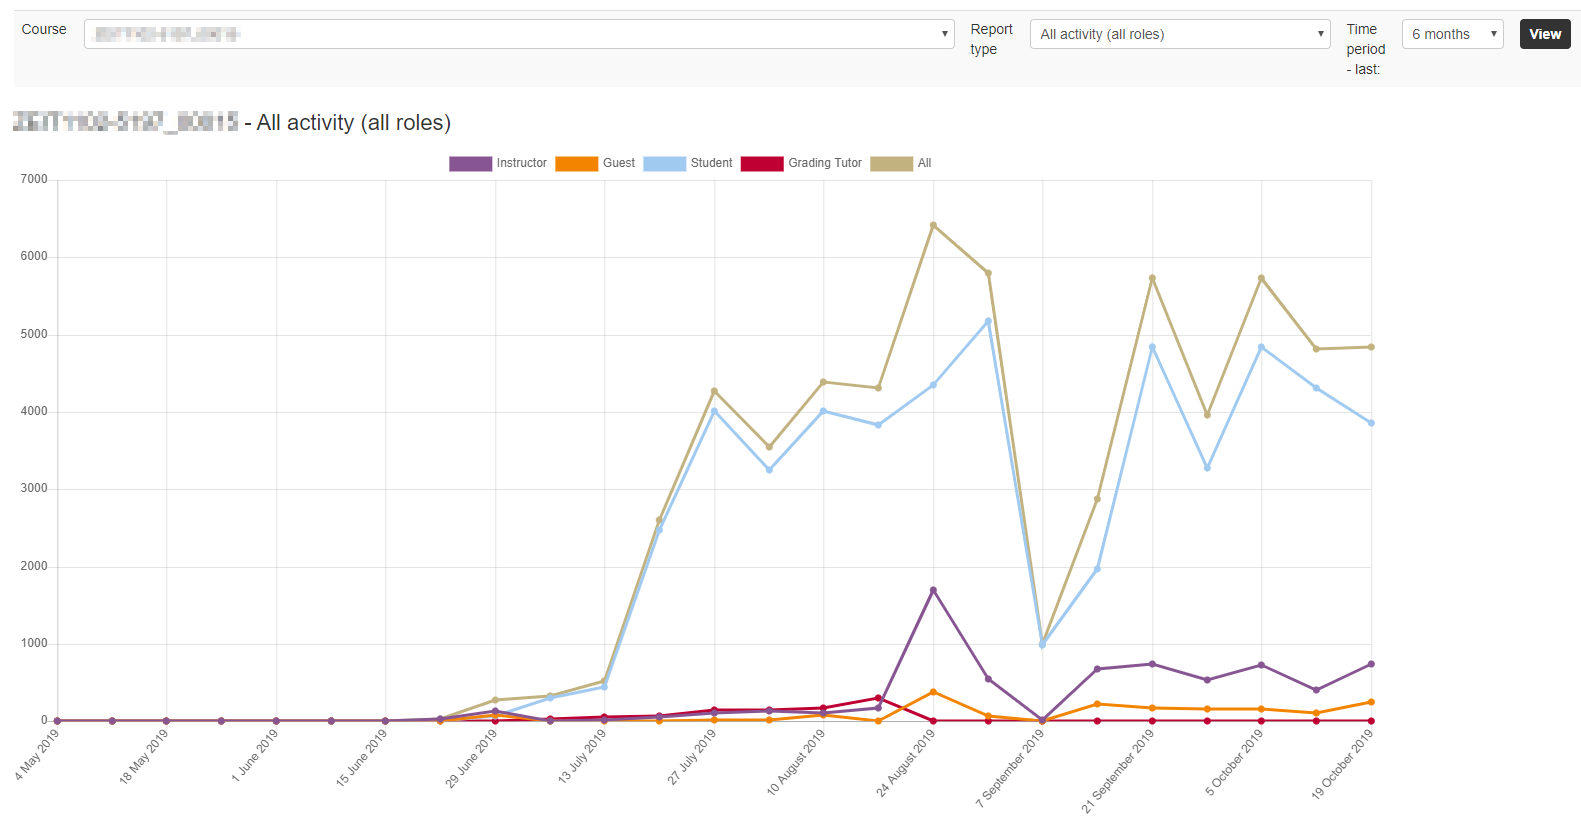 Moodle statistics graph demonstrates access to the site, and can be filtered by role.